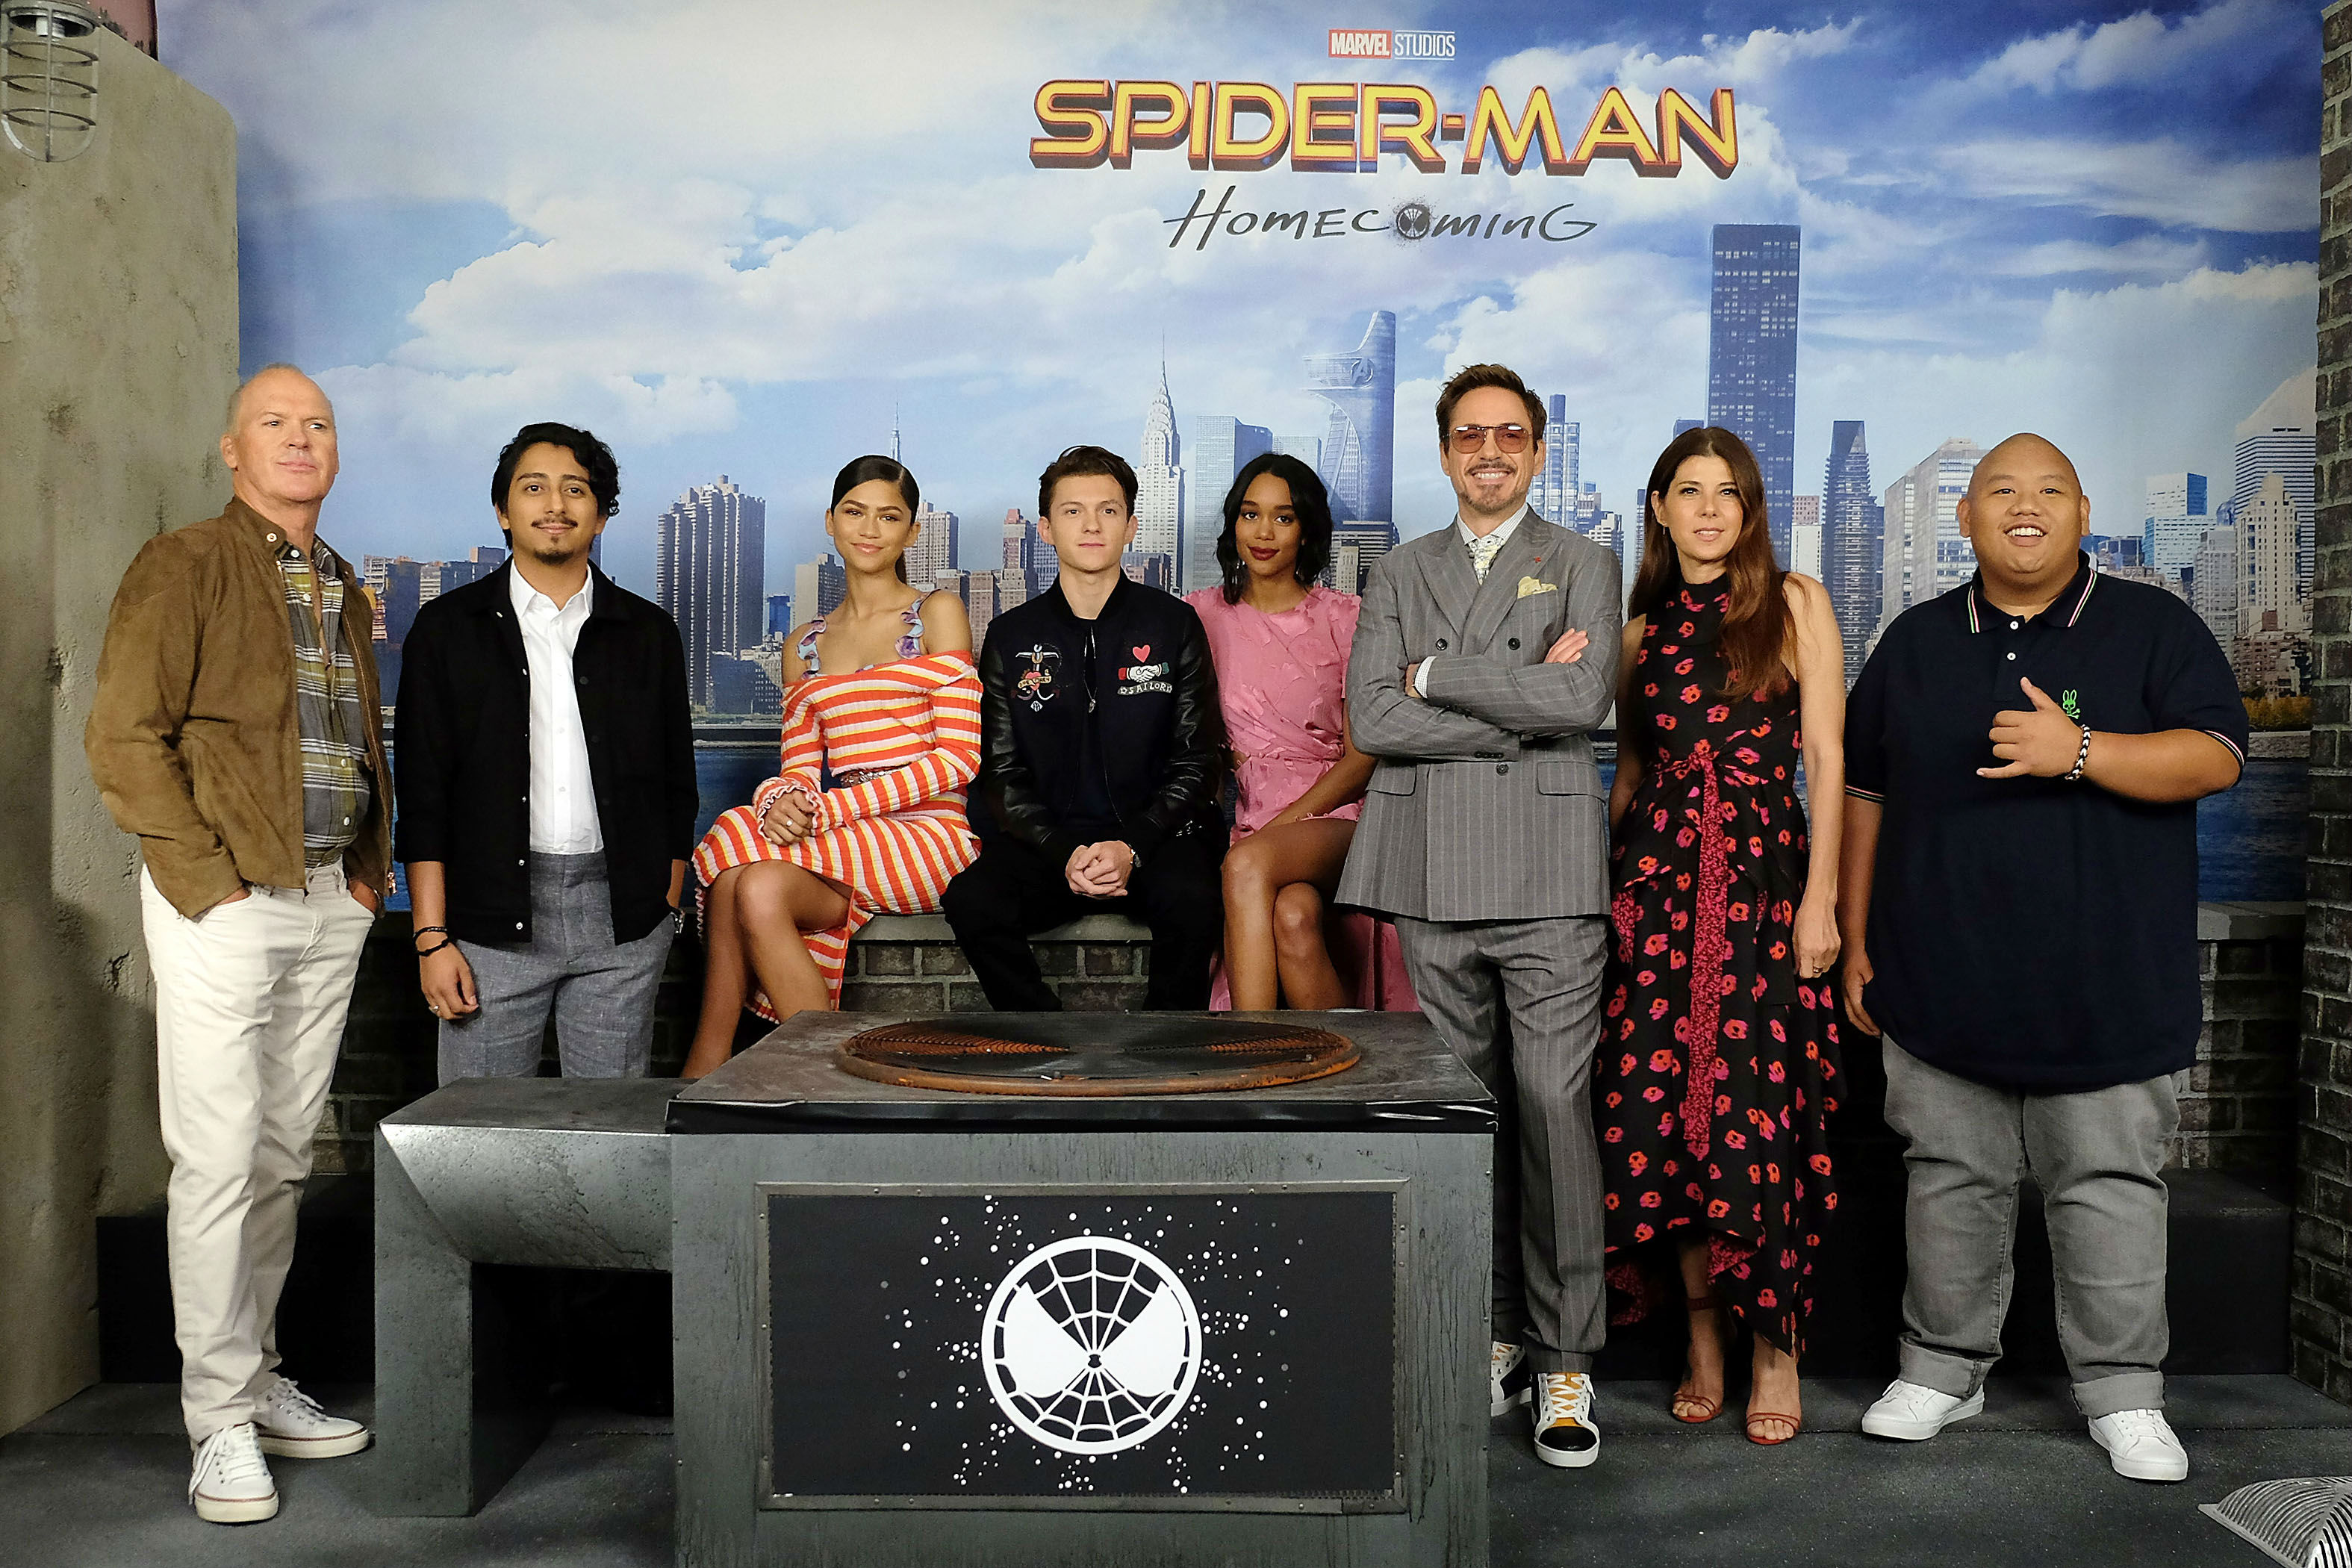 Spiderman Homecoming Cast